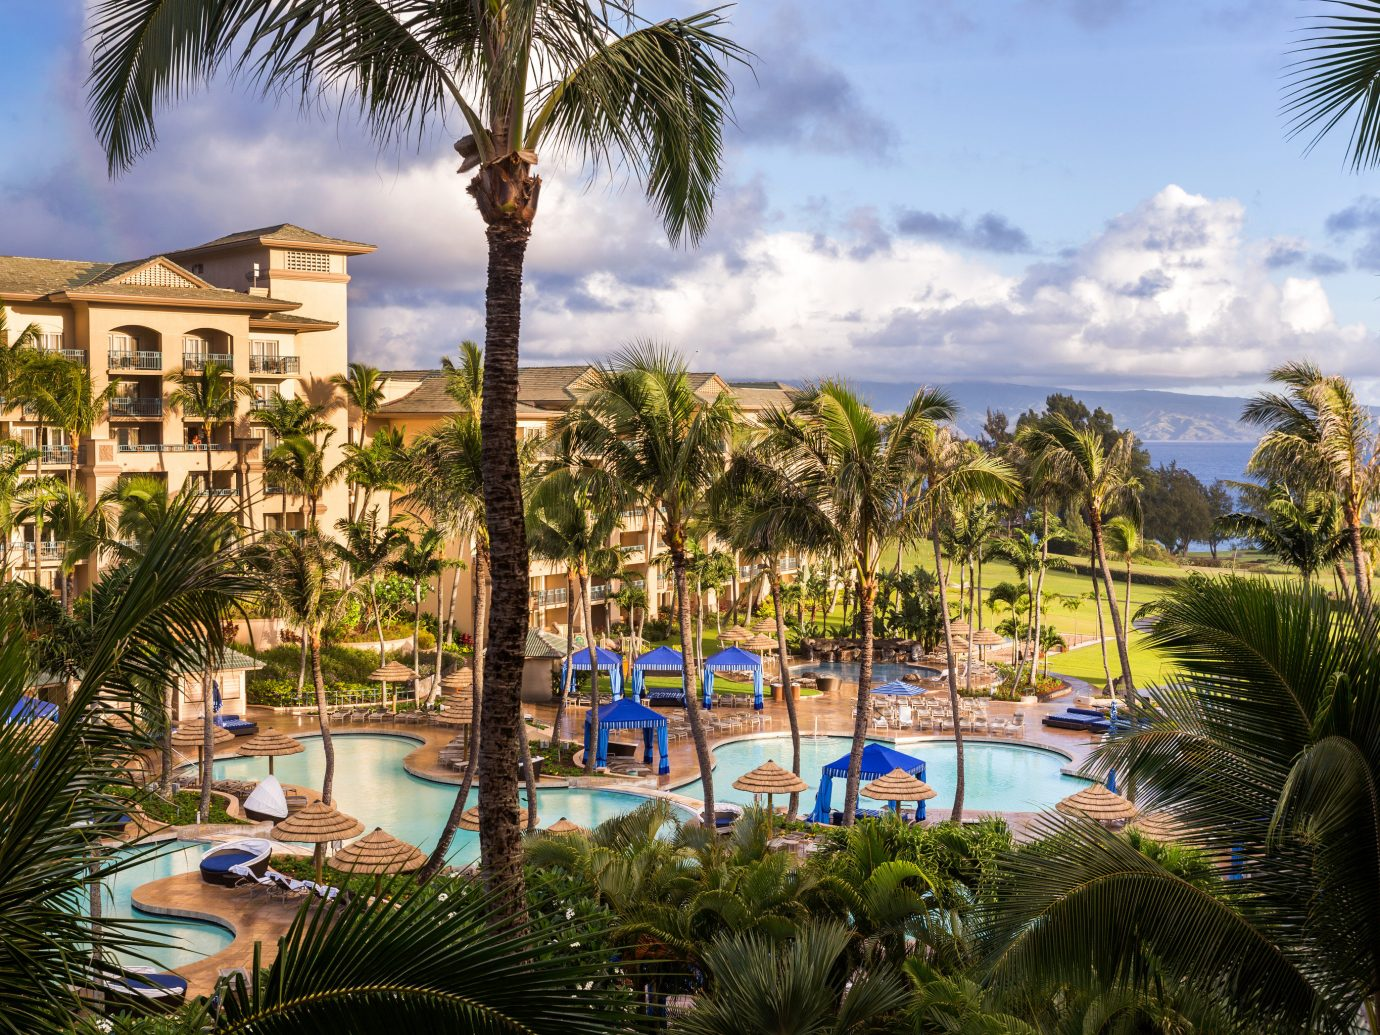 Beach Boutique Hotels Hotels Luxury Travel tree outdoor sky palm plant Resort leisure property swimming pool vacation estate arecales palm family real estate condominium lined colorful caribbean tropics several shore